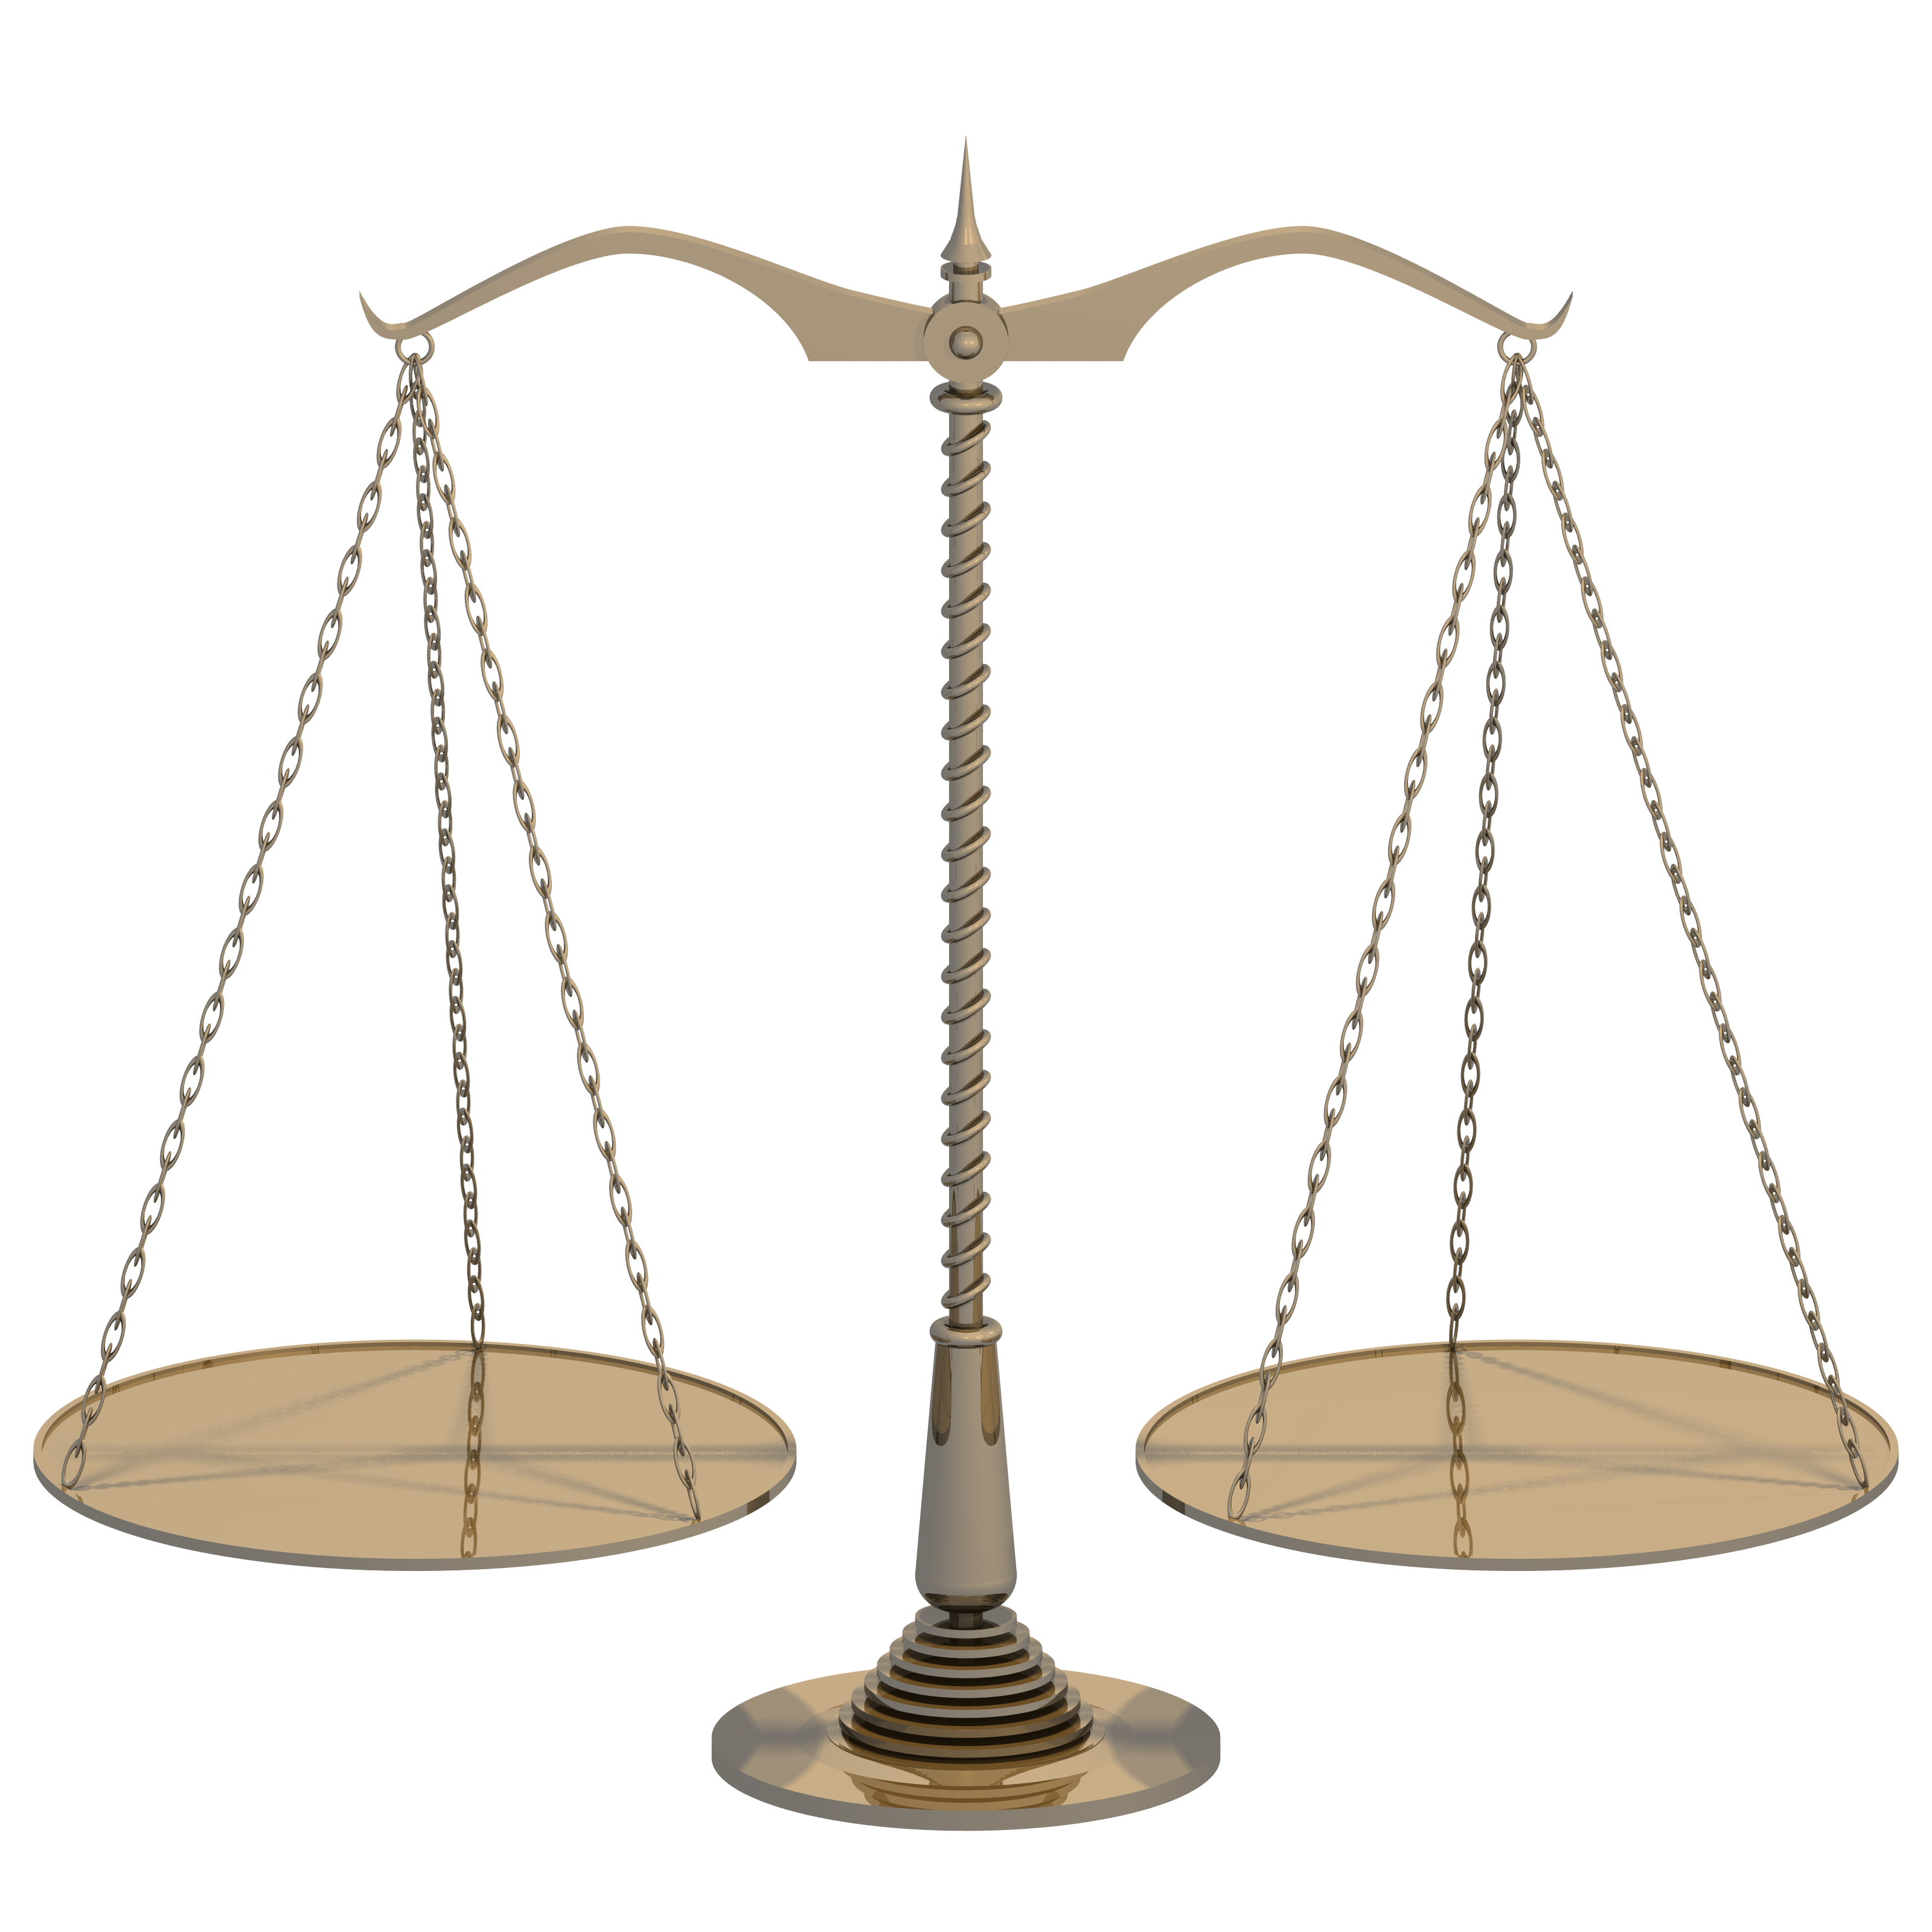 file brass scales with flat trays balanced png wikimedia Scales of Justice Clip Art Free Download Scales of Justice Images Free